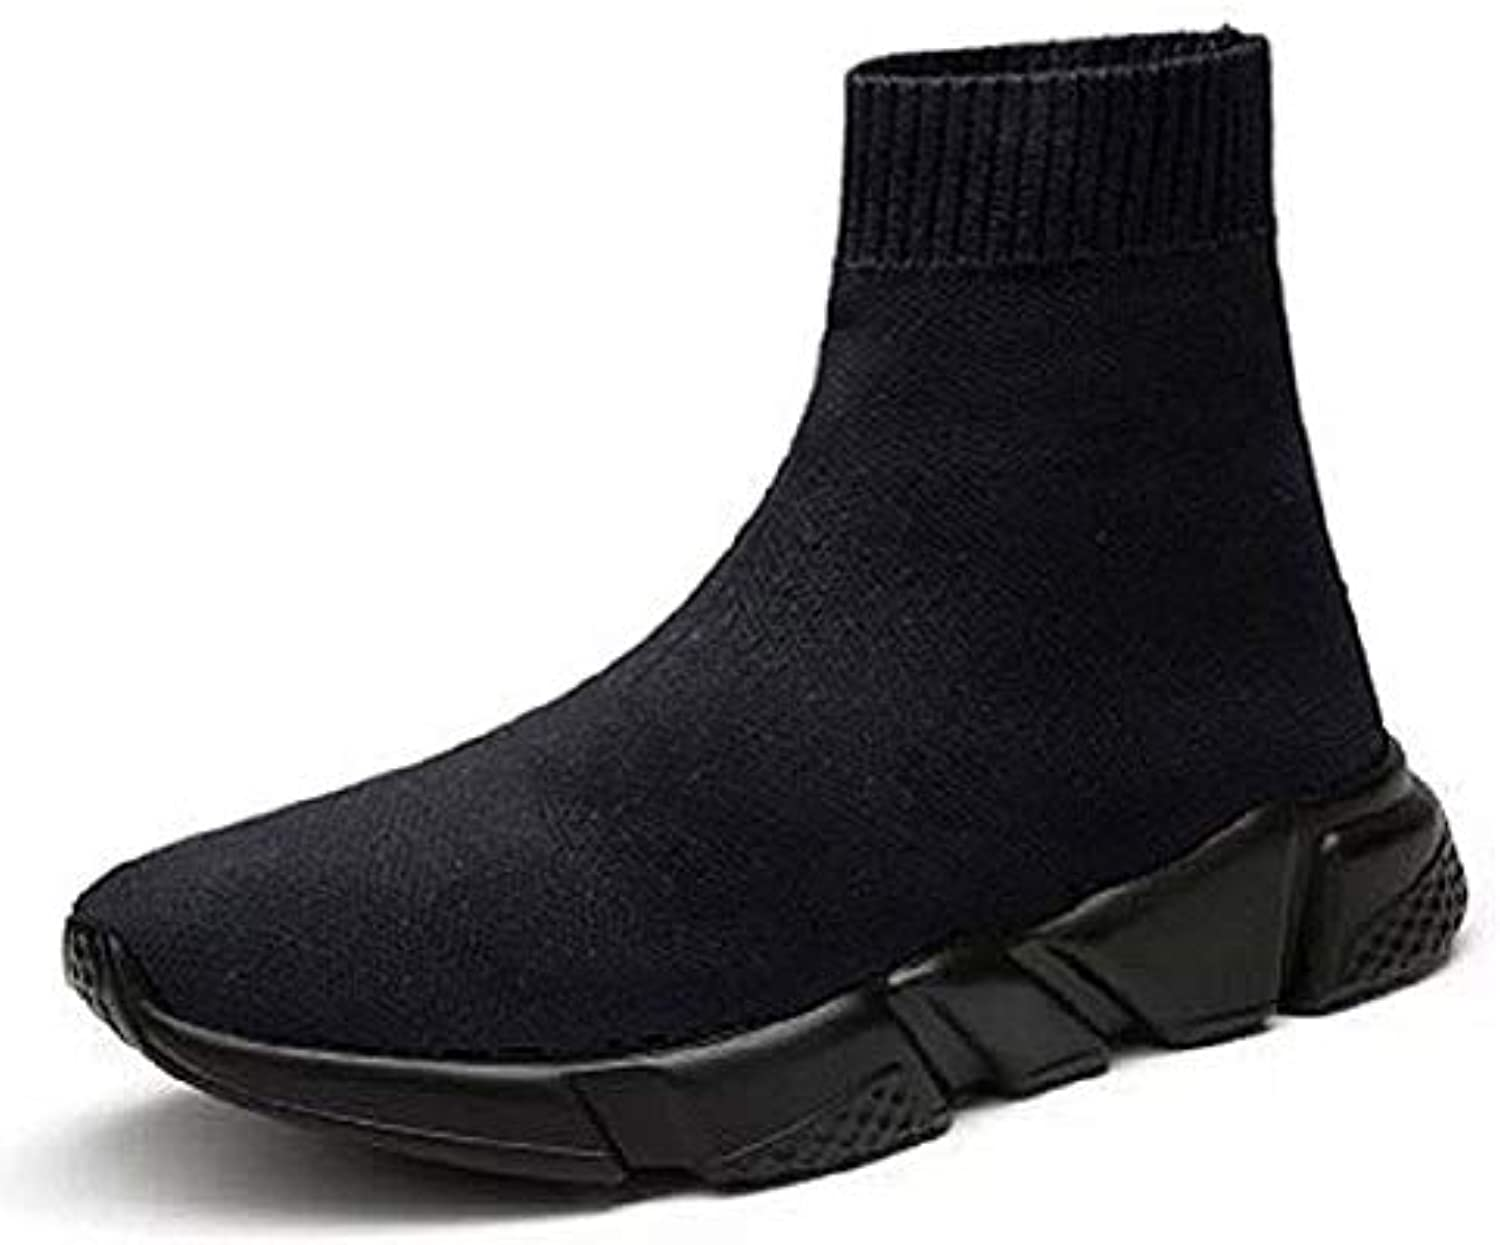 Linmatealliance Outdoor&Sports Outdoor&Sports shoes Knit Upper Breathable Sport Sock Boots Chunky Sneakers High Top Running shoes for Men Women, shoes Size 42(Black)